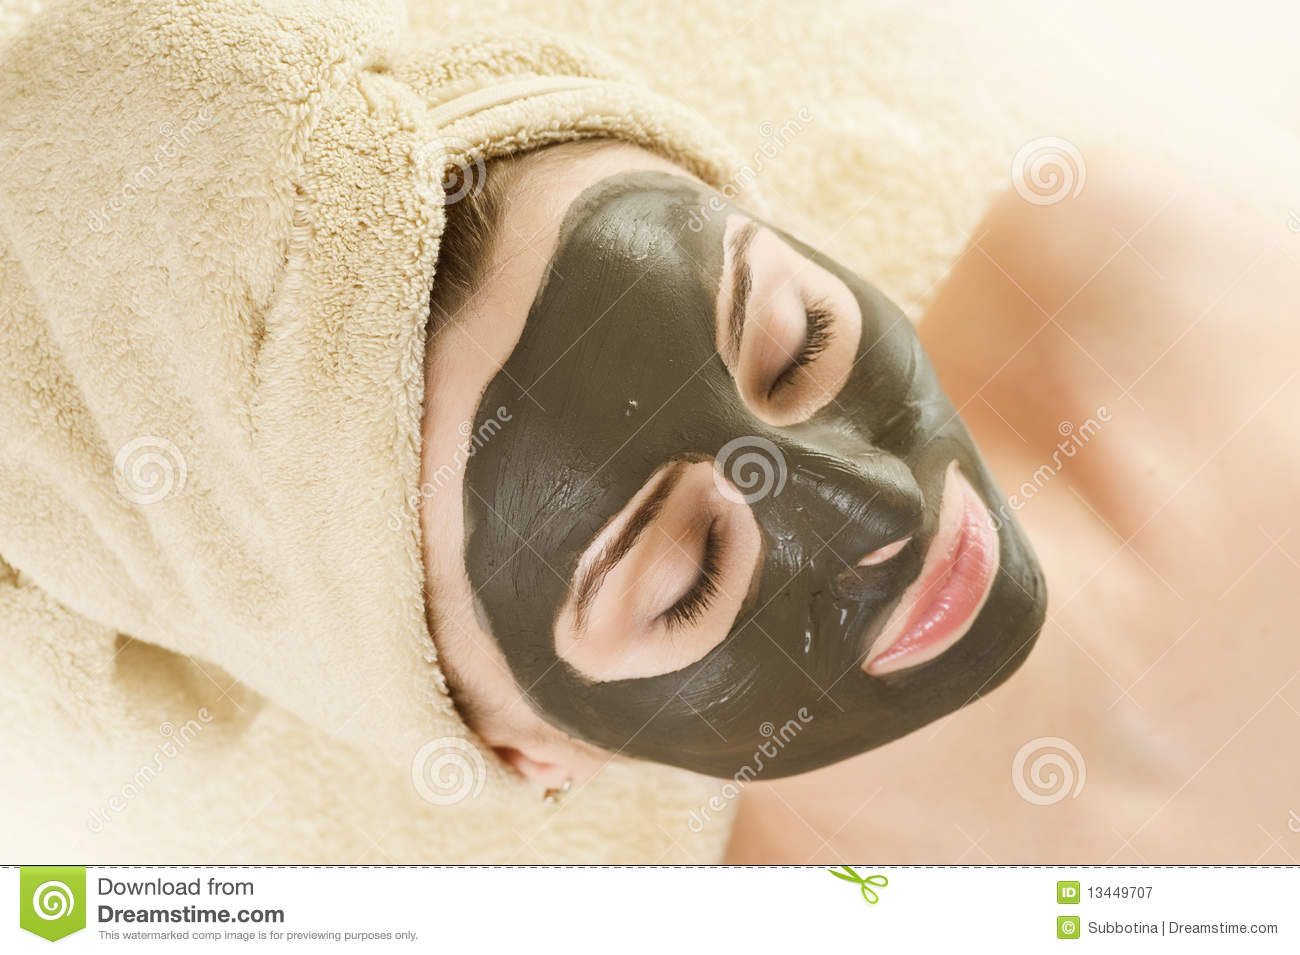 Mud Mask on the face.Spa.